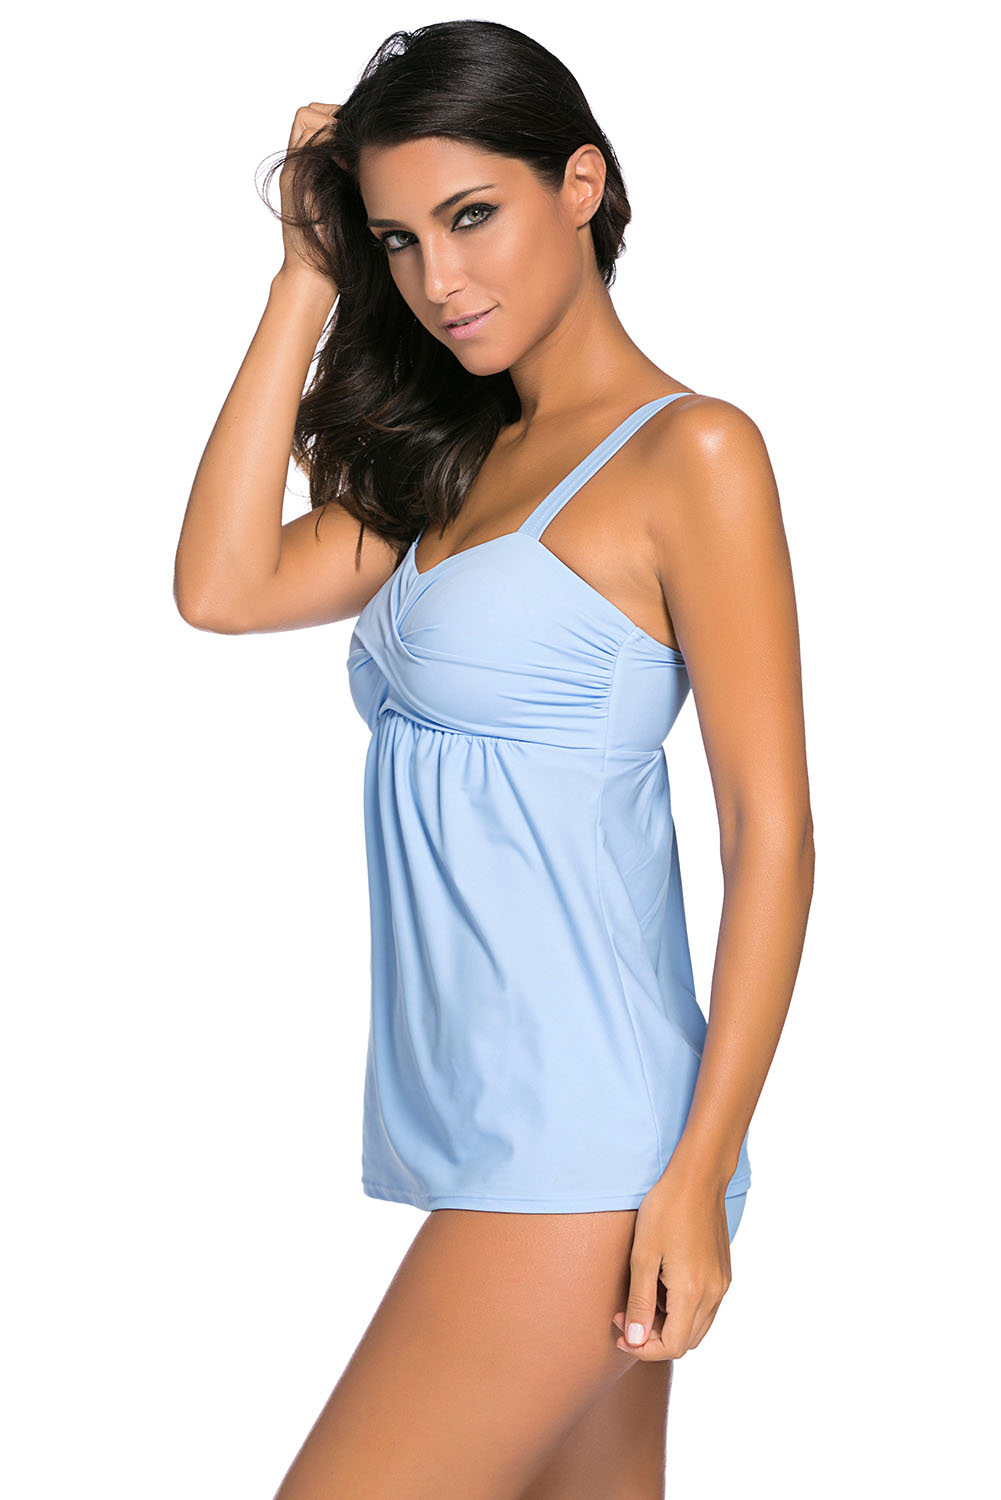 BY41933-4 Light Blue 2pcs Swing Tankini Swimsuit